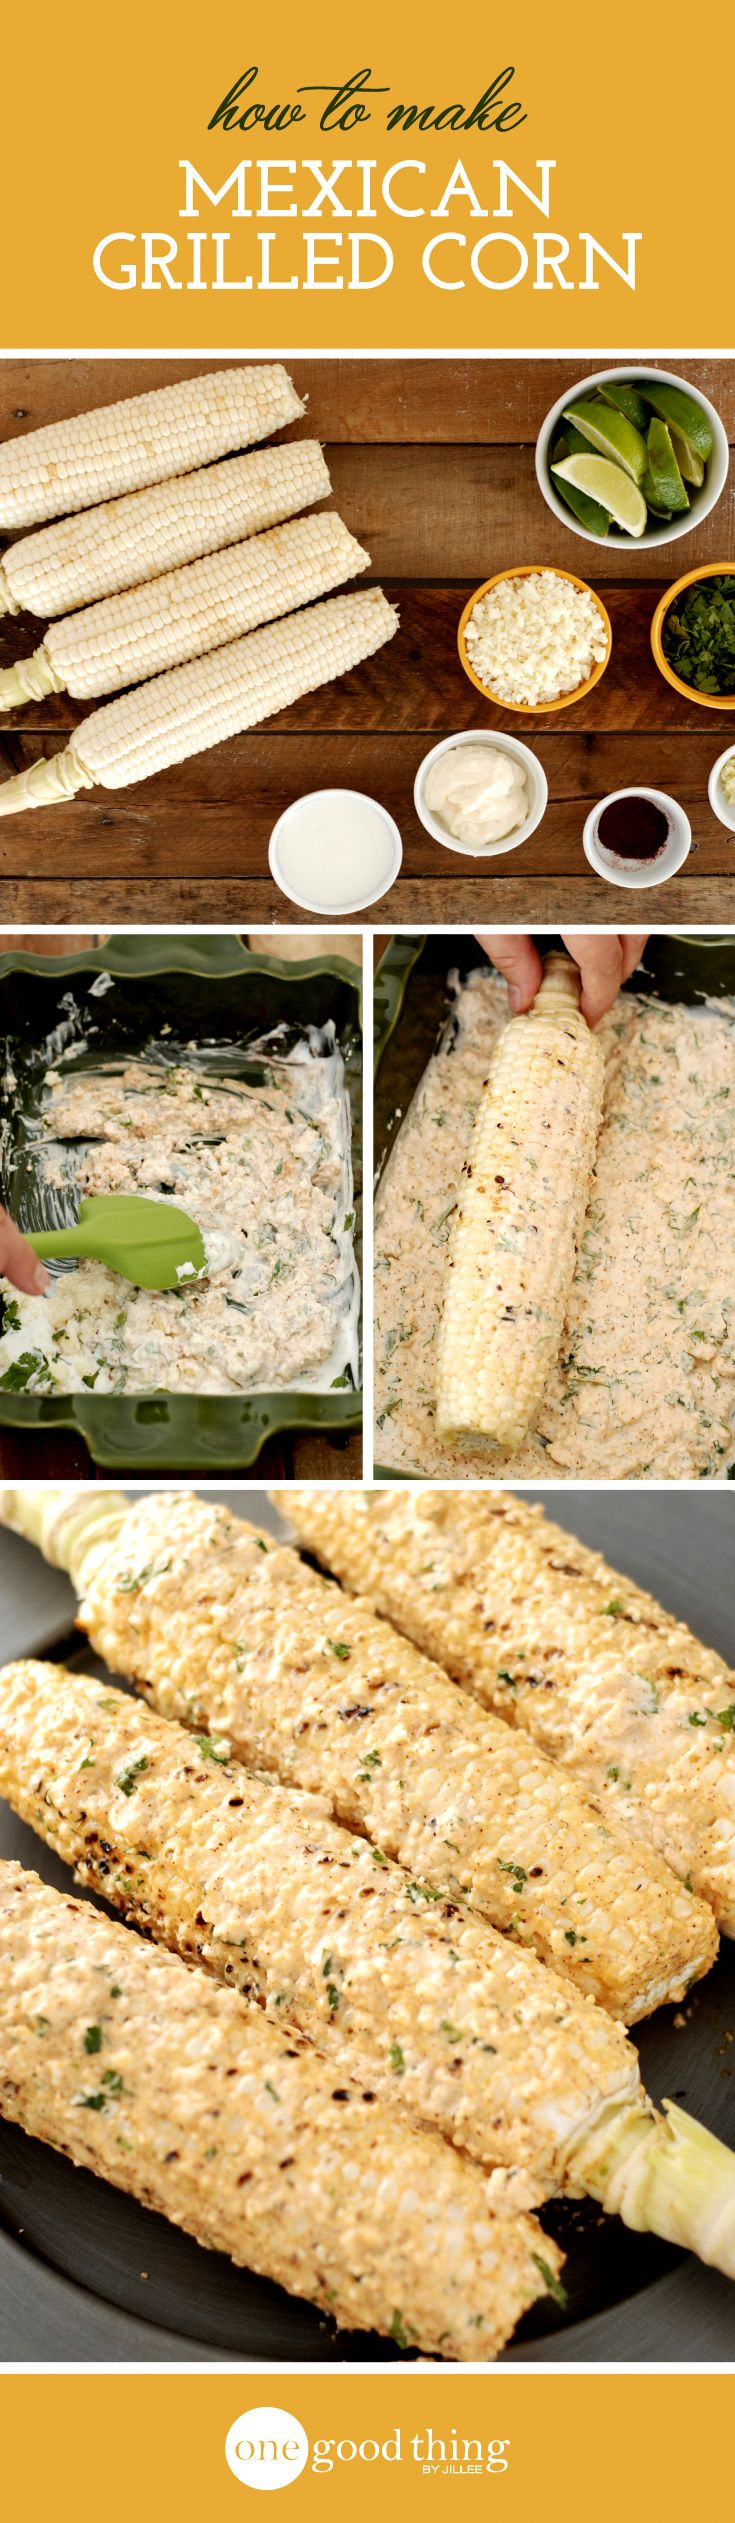 Enjoy corn on the cob in a delicious new way this summer! After trying this recipe for Mexican Grilled Corn you may never go back to plain corn again!